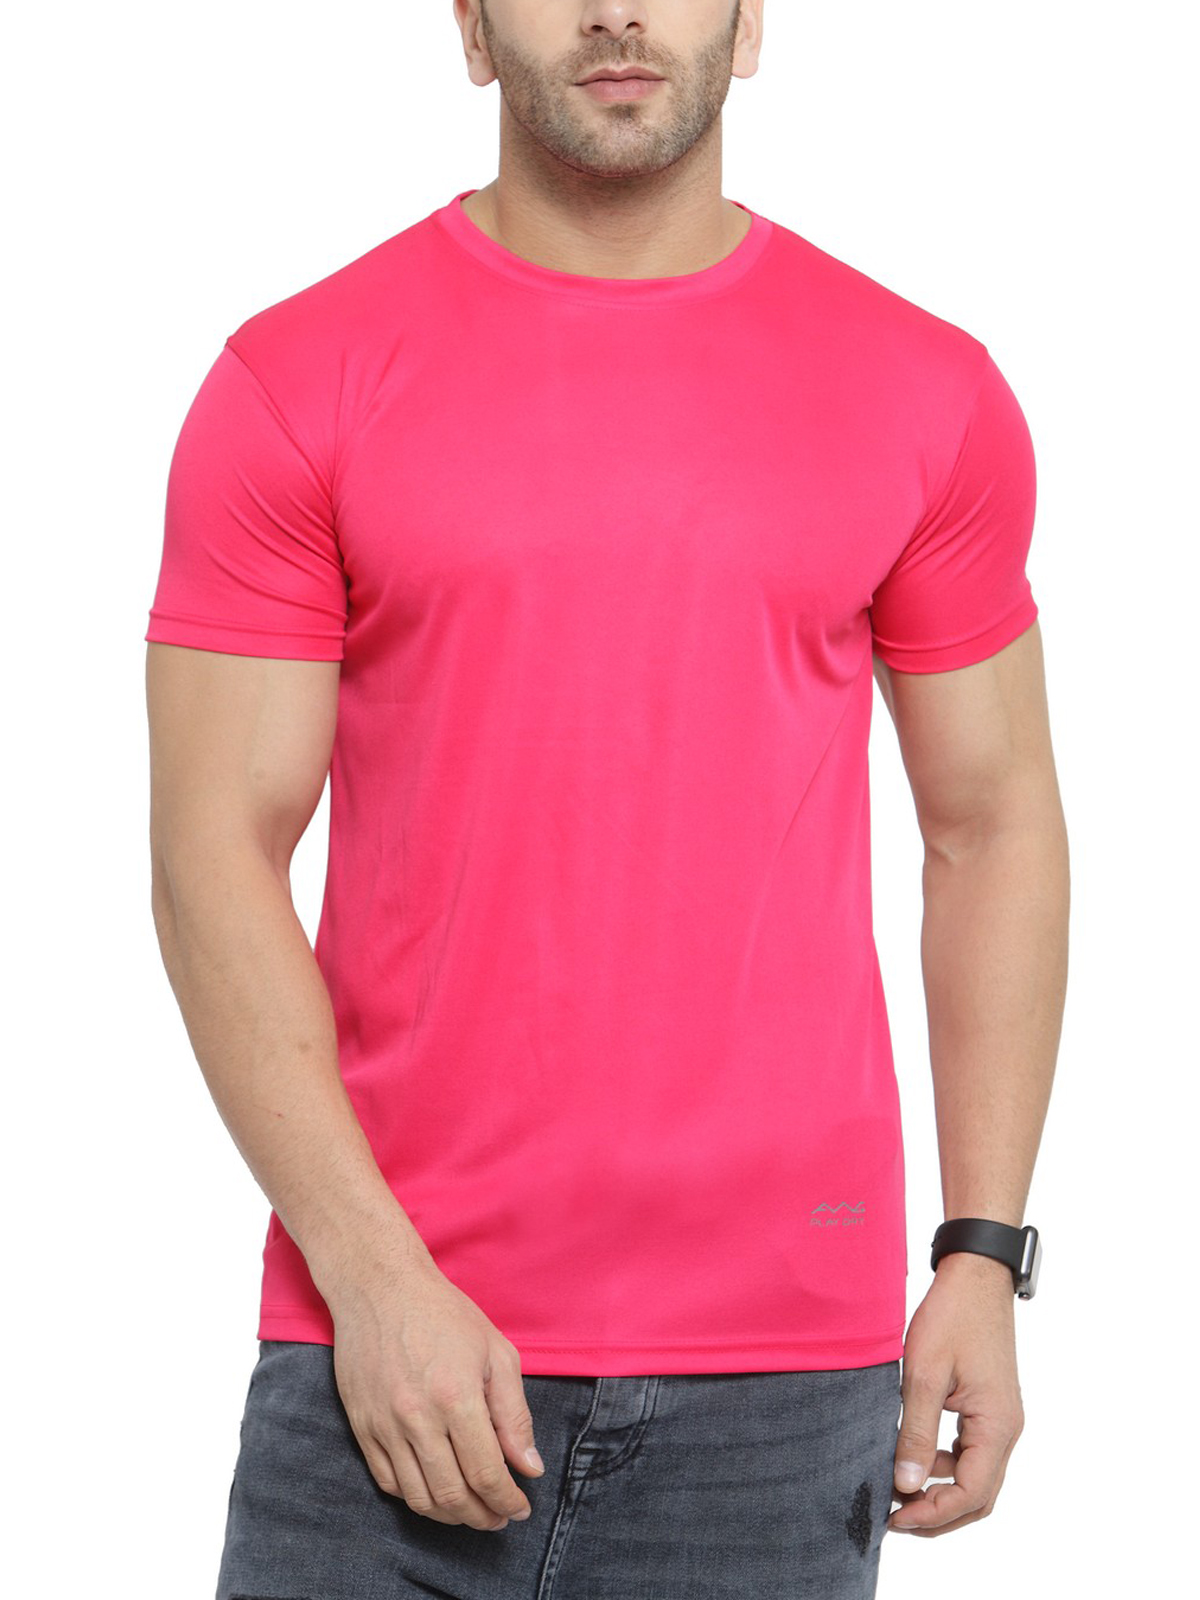 AWG Men's Pink Jersey Dryfit Polyester Round Neck T-shirt